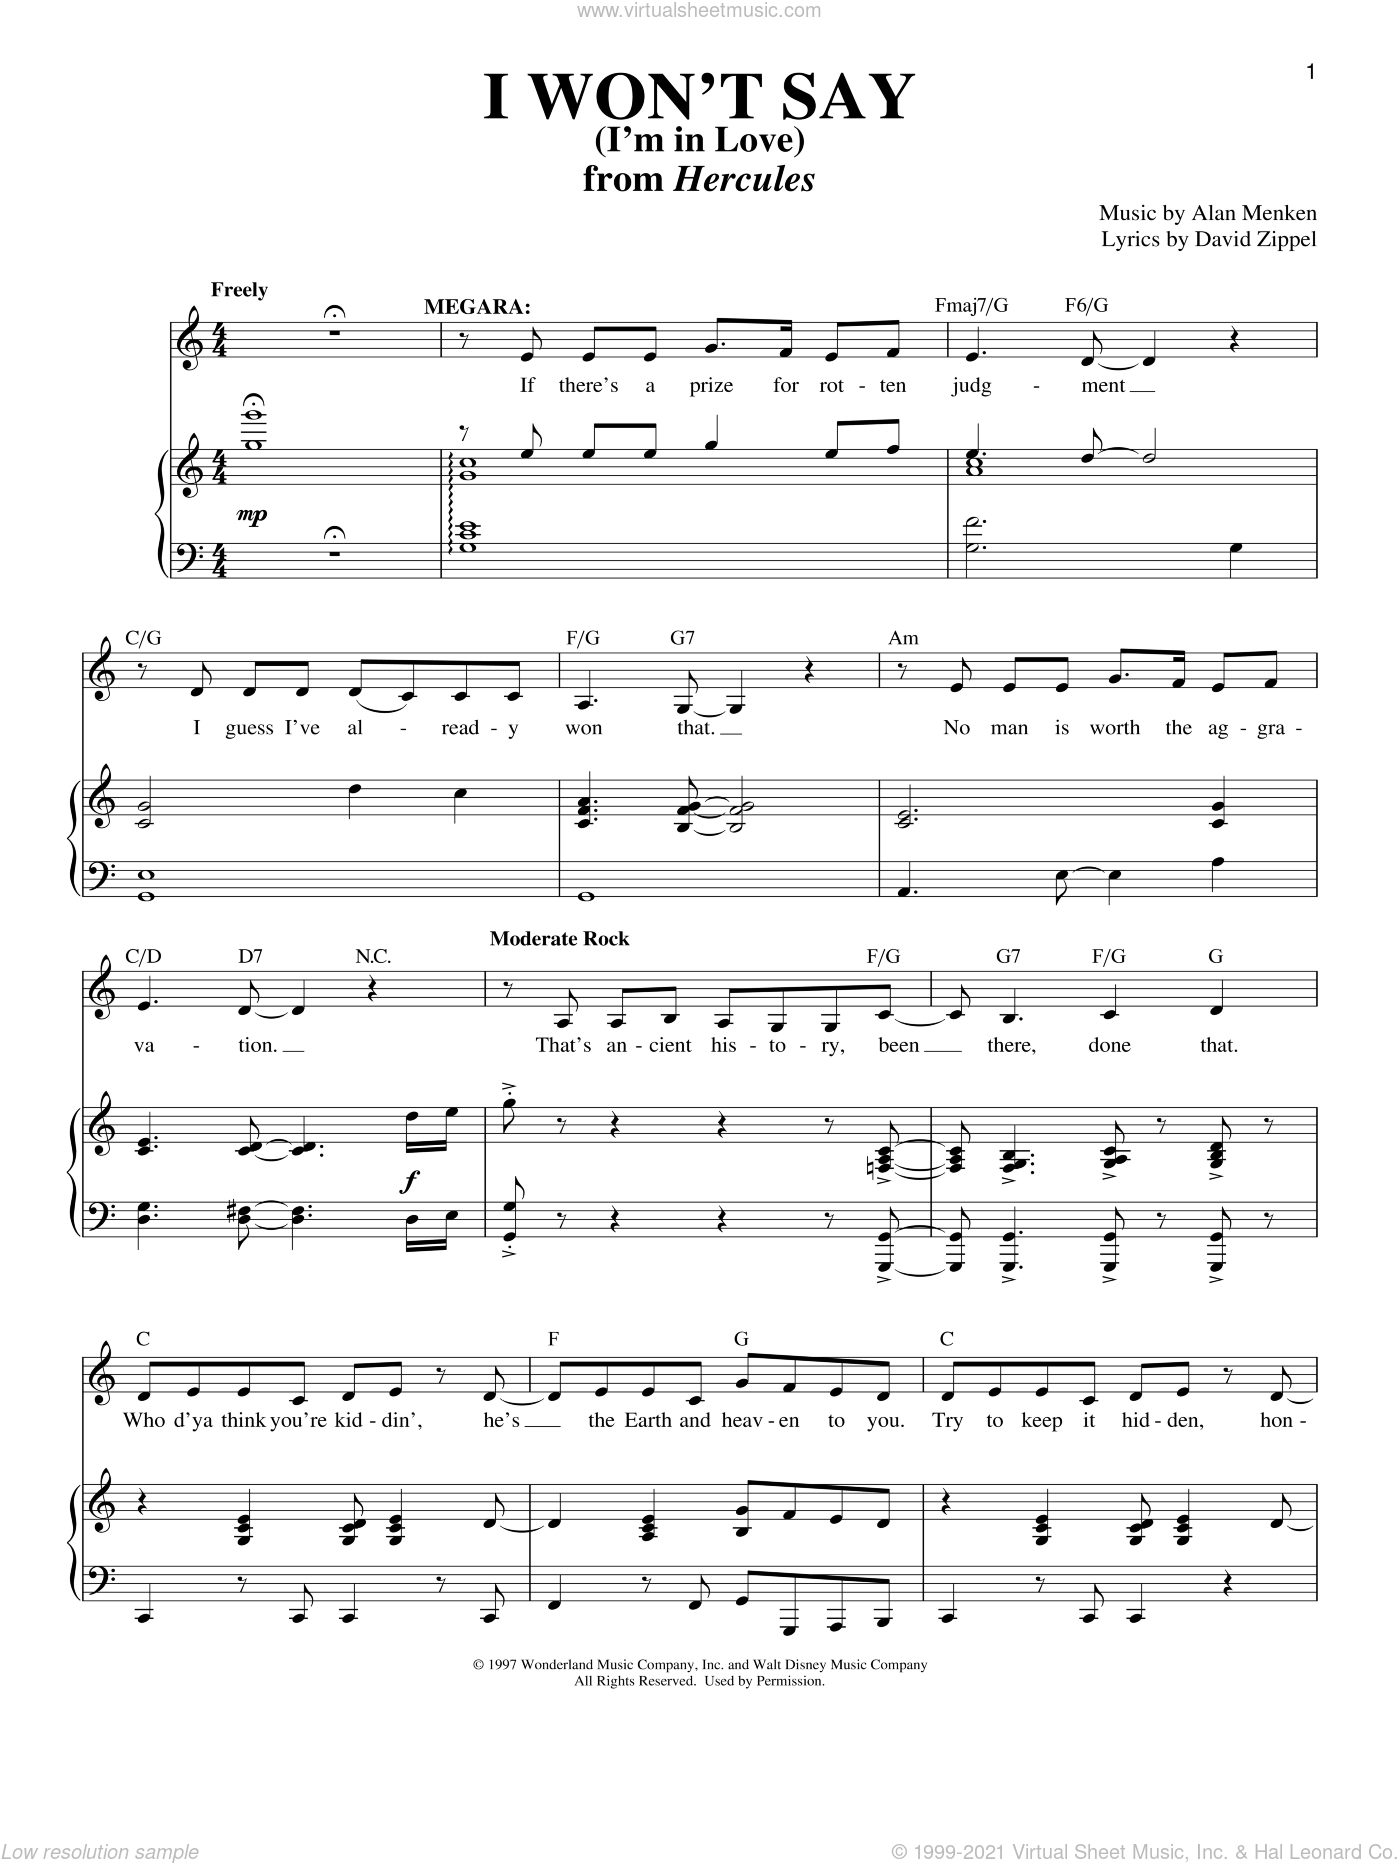 I Won't Say (I'm In Love) sheet music for voice and piano by David Zippel, Richard Walters and Alan Menken. Score Image Preview.